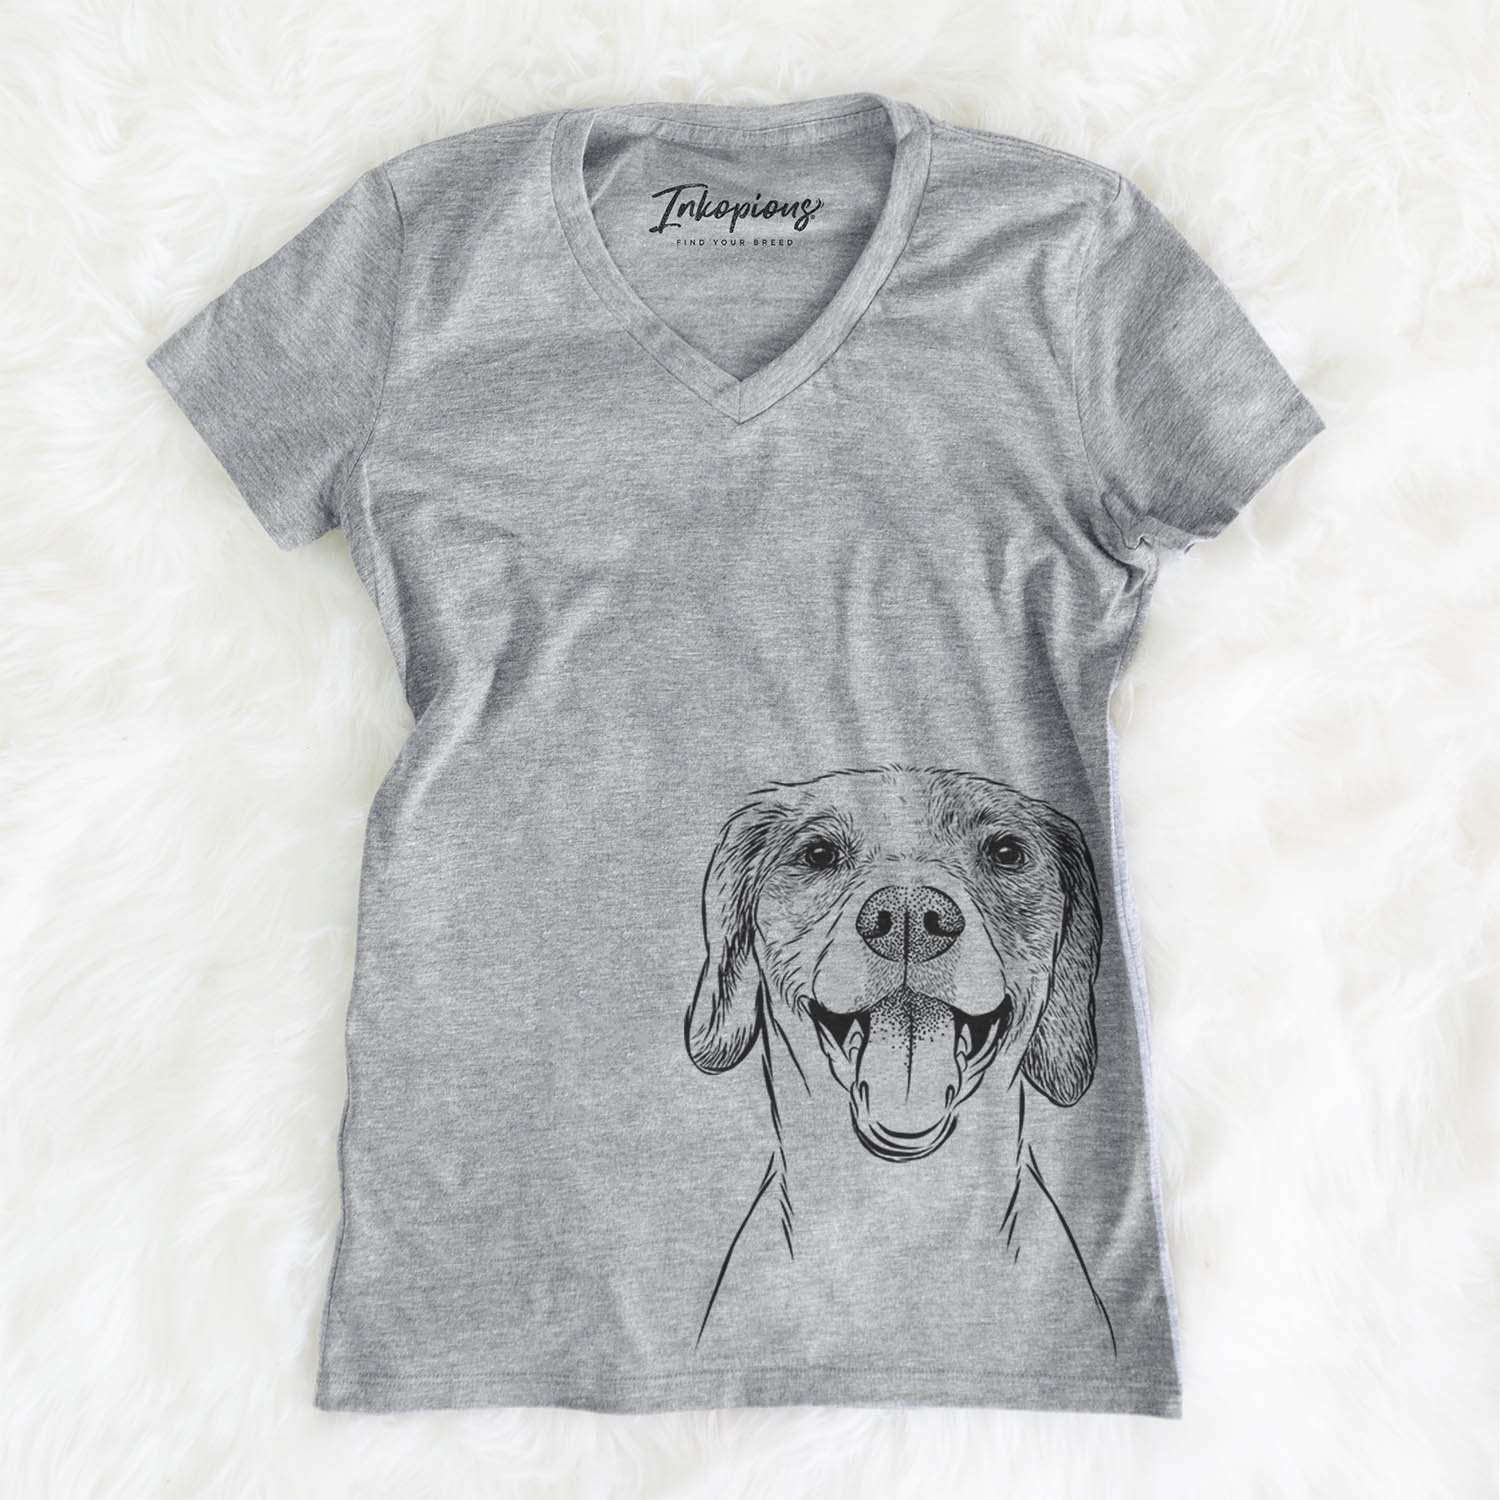 Obi the Beagle Mix - Women's Modern Fit V-neck Shirt